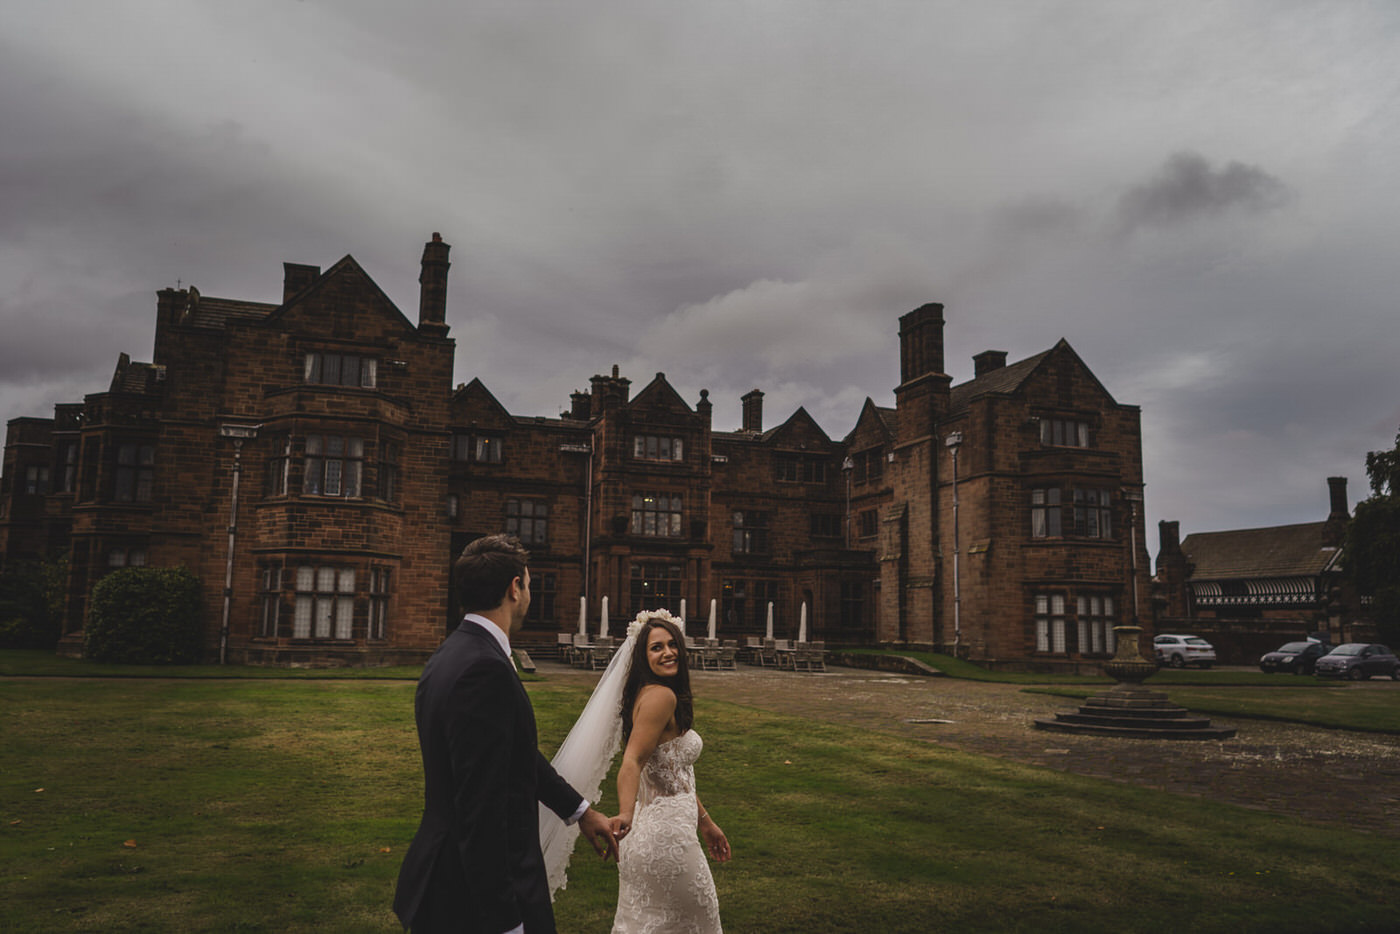 Thornton Manor is the perfect backdrop to the bride and groom as they walk through the gardens